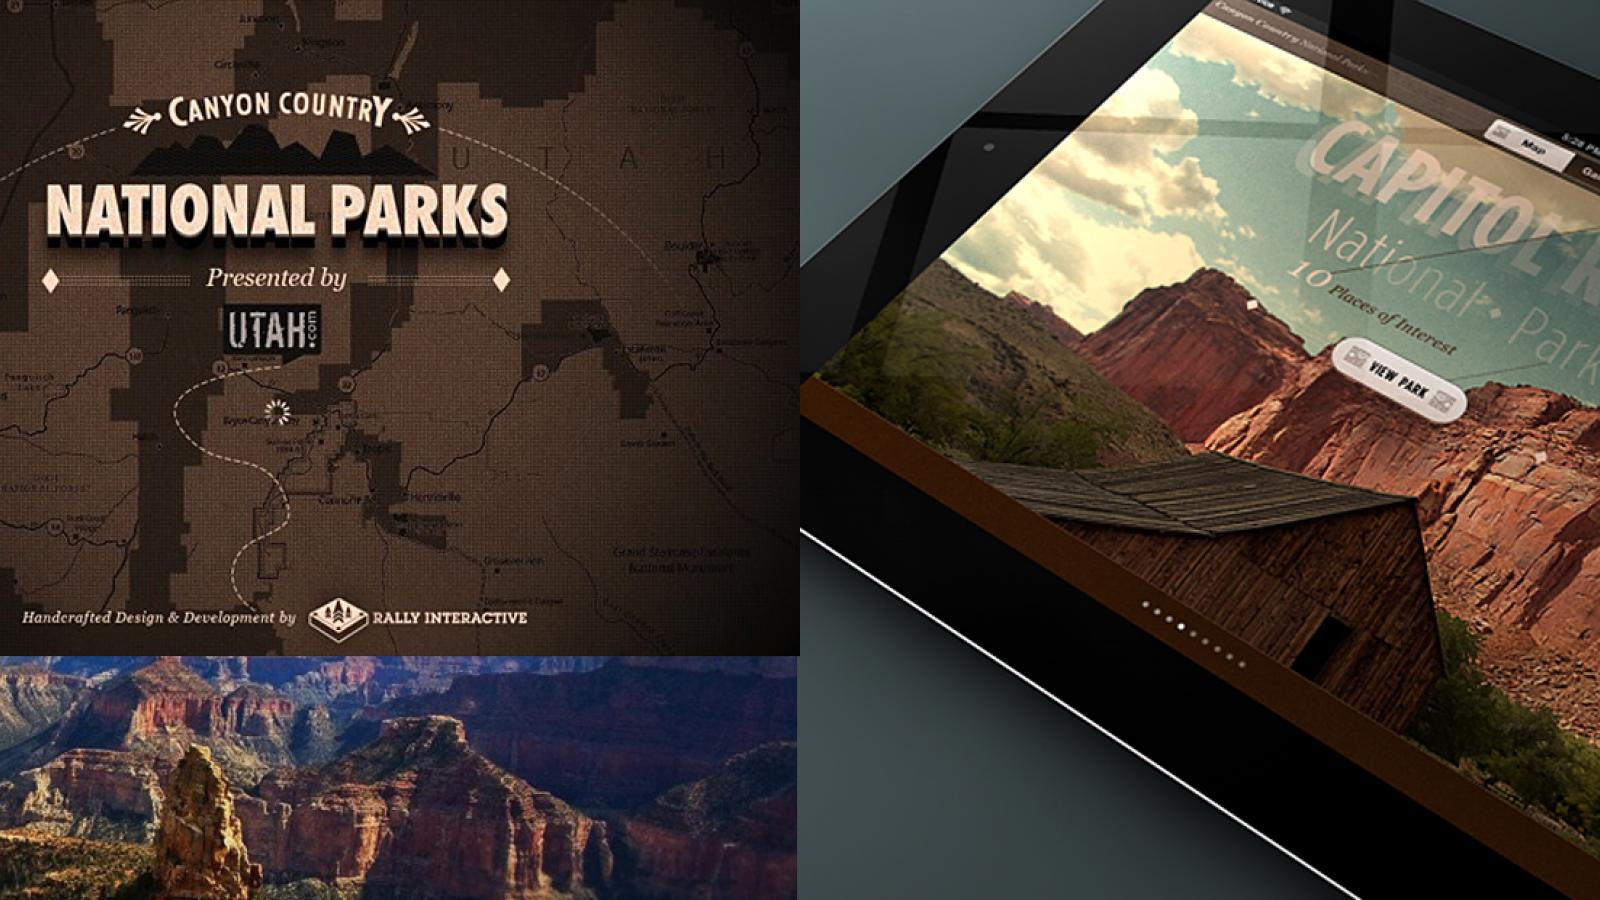 Canyon Country National Parks App on iPad by Ben Cline